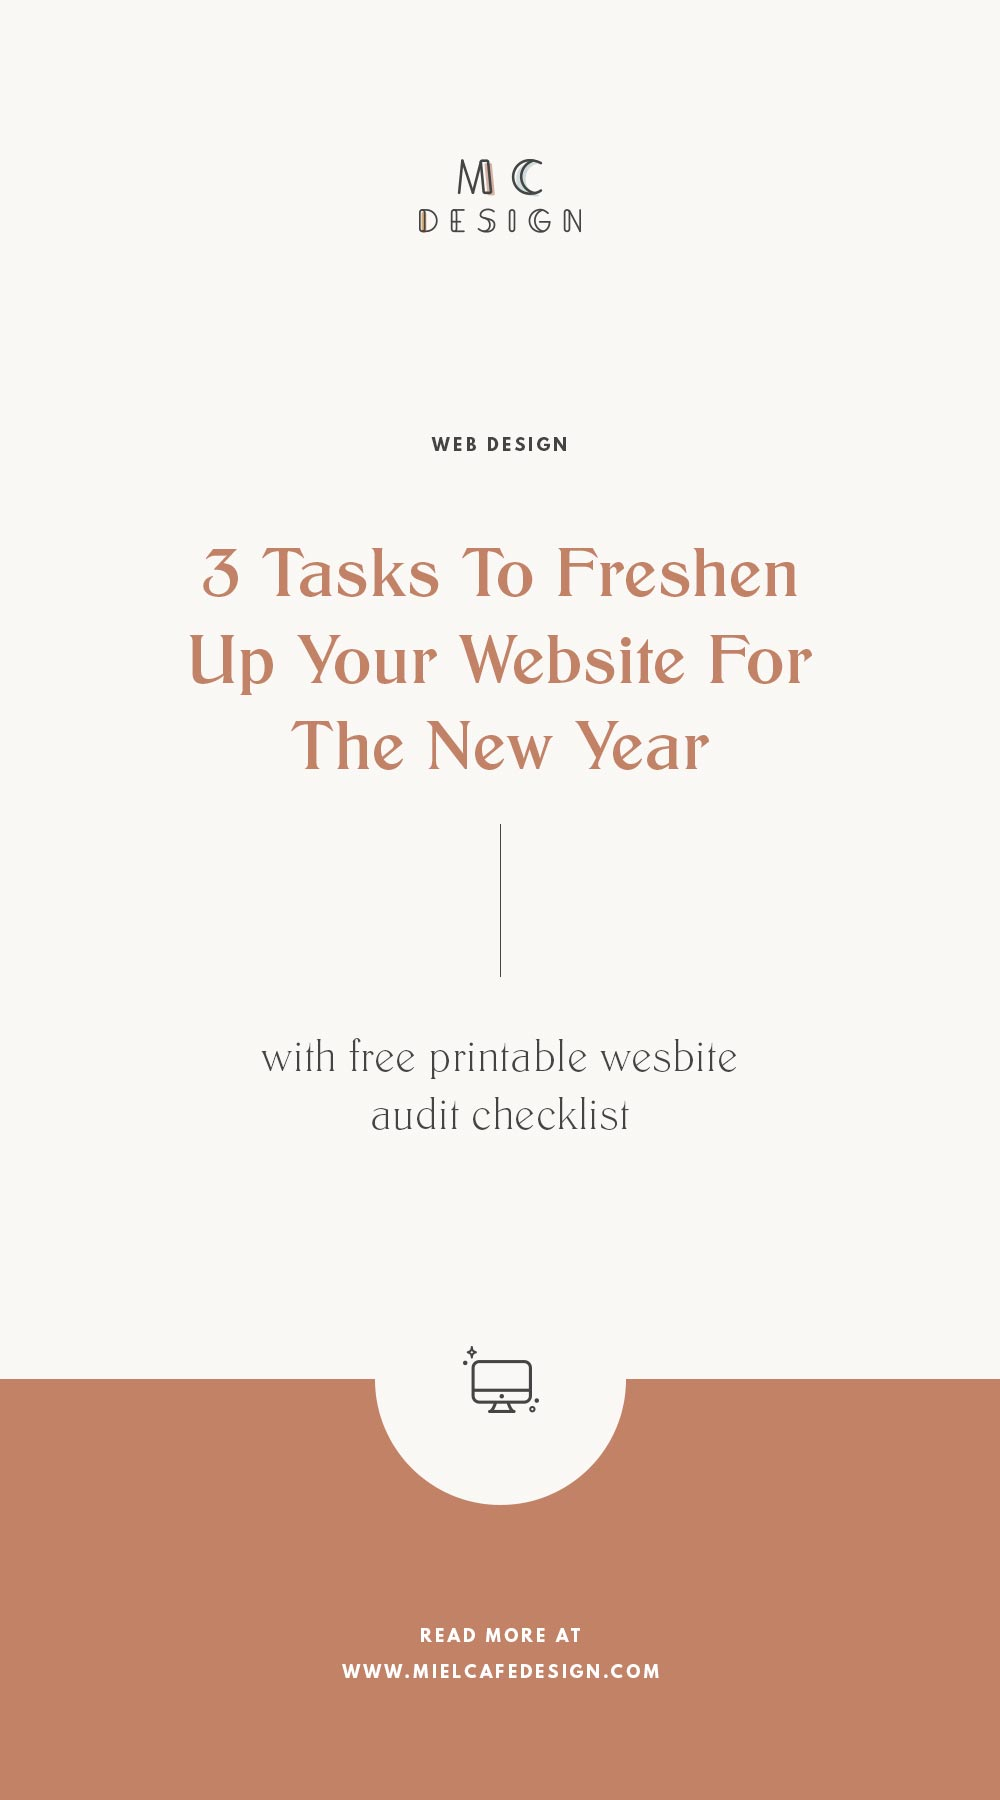 Website Refresh: 3 easy and actionable tasks to freshen up your website for the new year + FREE printable website audit checklist